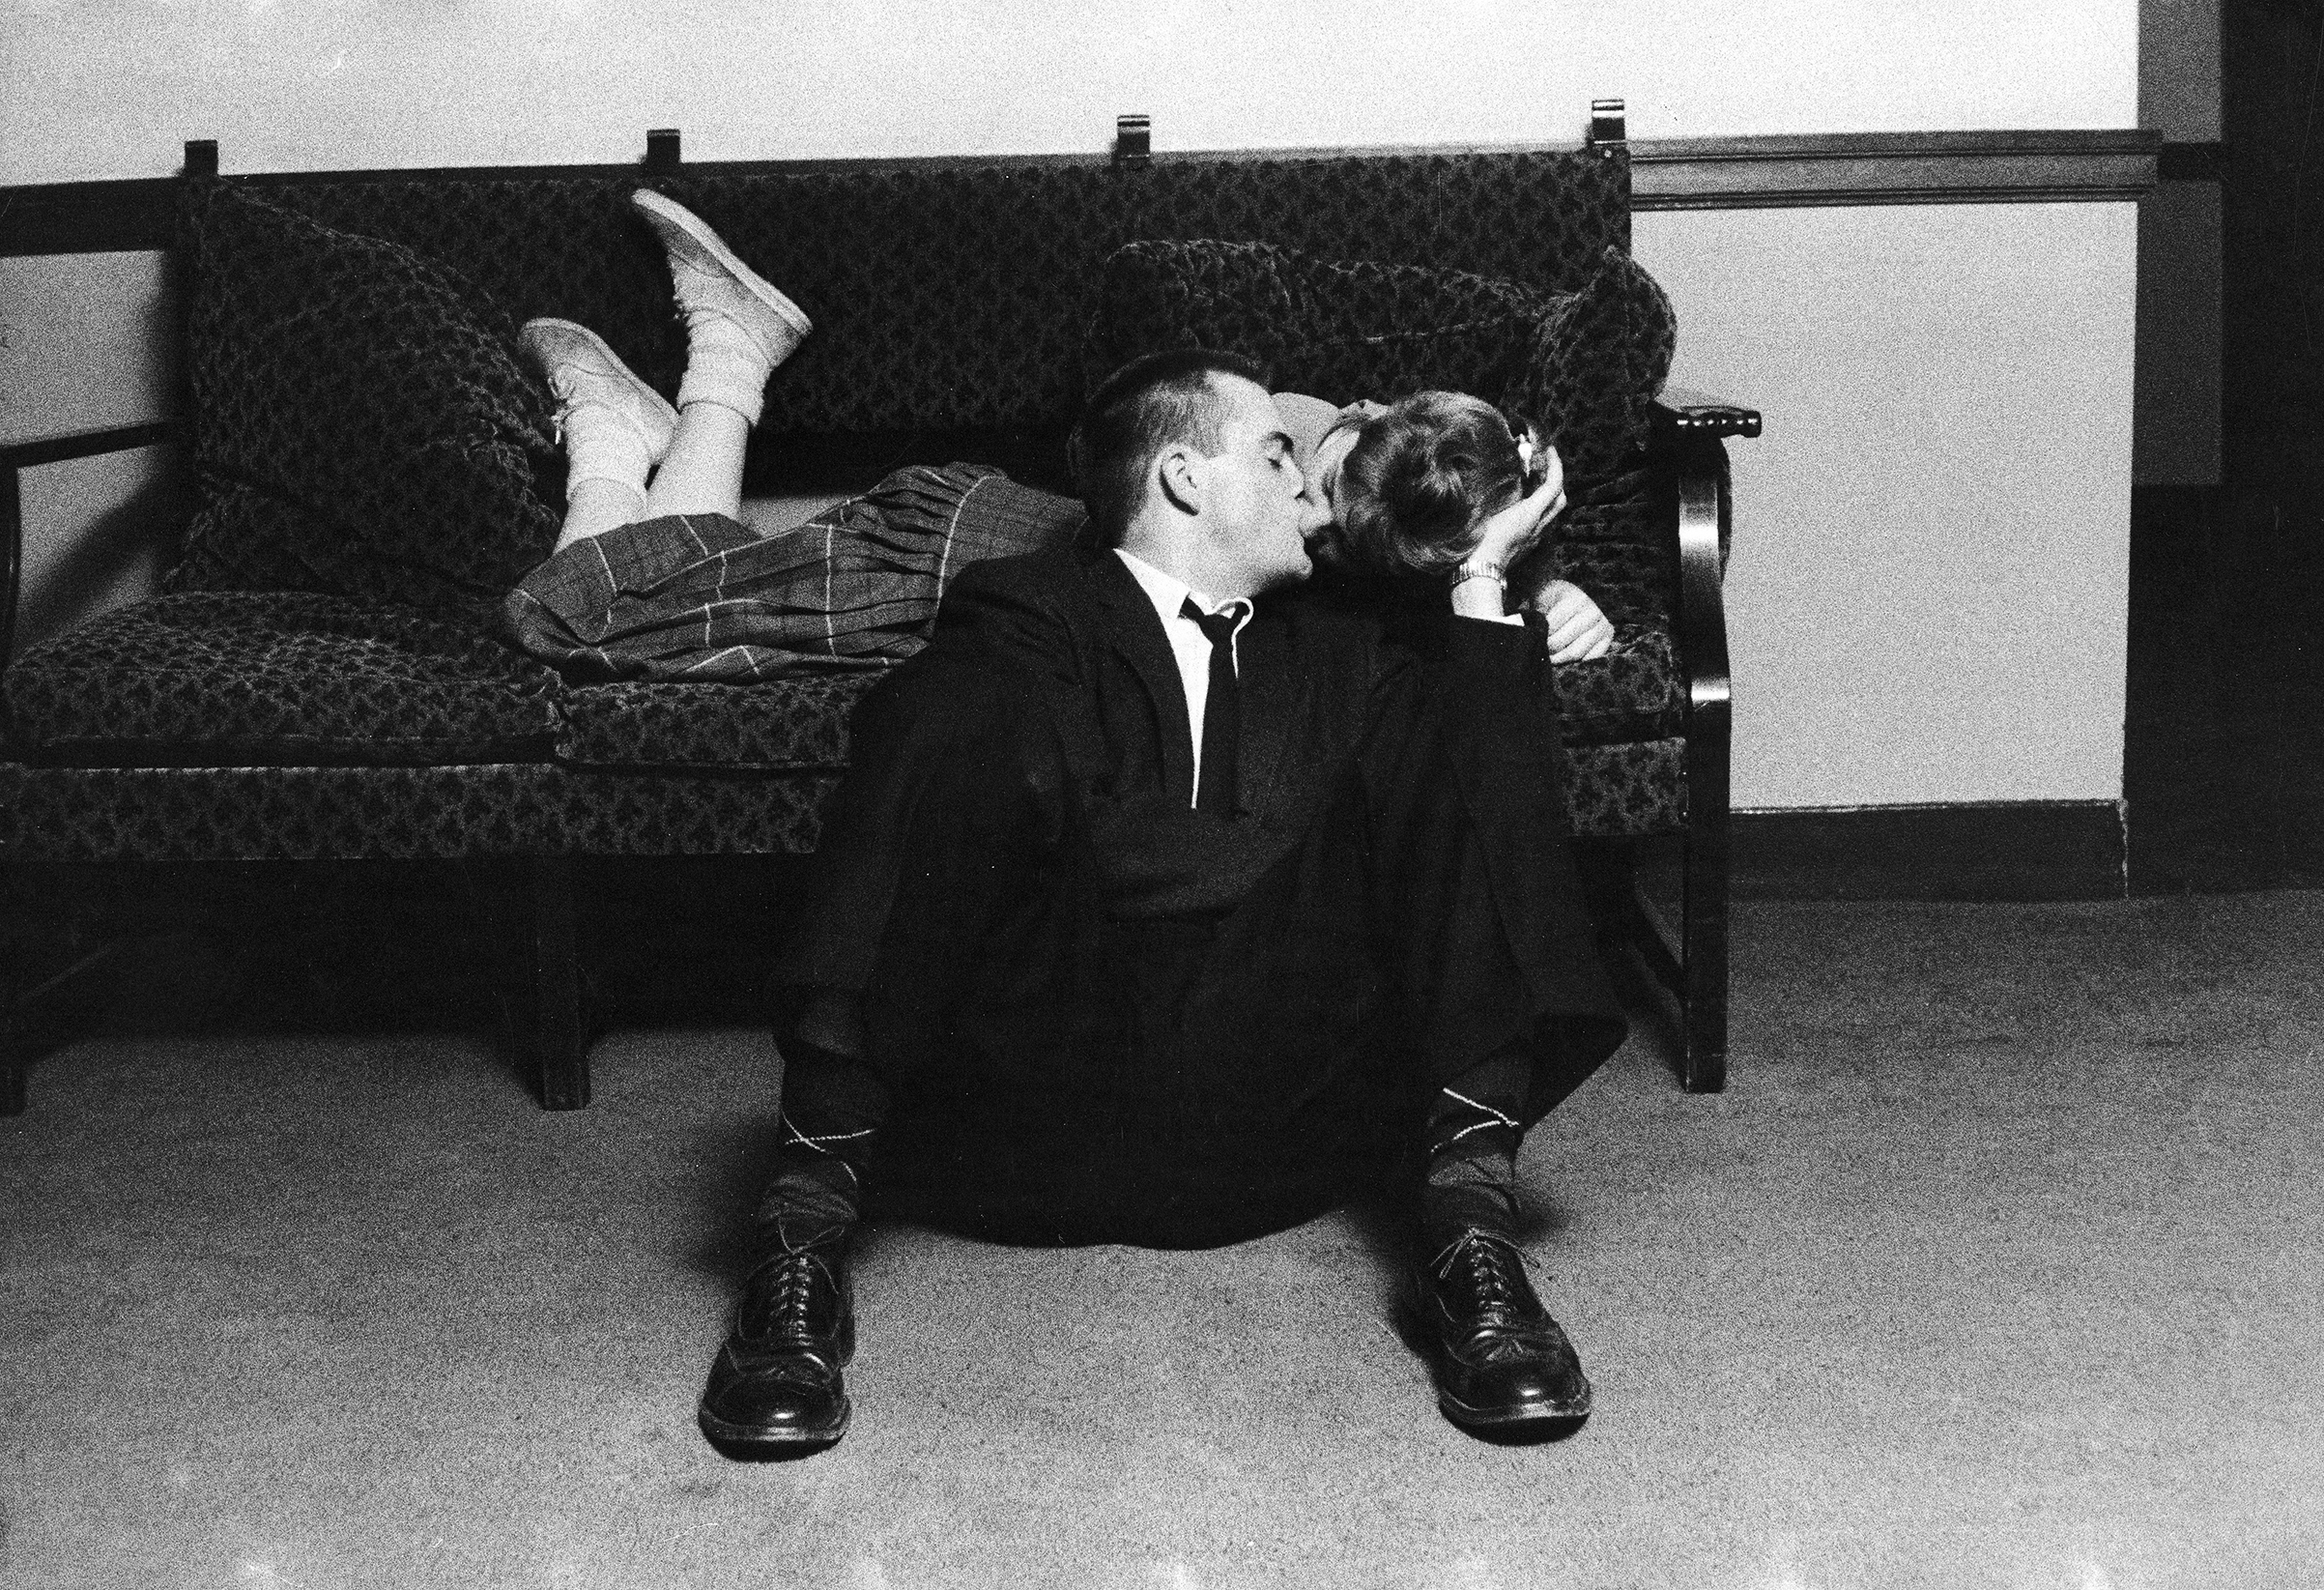 A University of Michigan student couple engaged in an impromptu kiss in the Union Building on campus. 1957. This was forbidden conduct because rules required couples to have both feet on the floor.